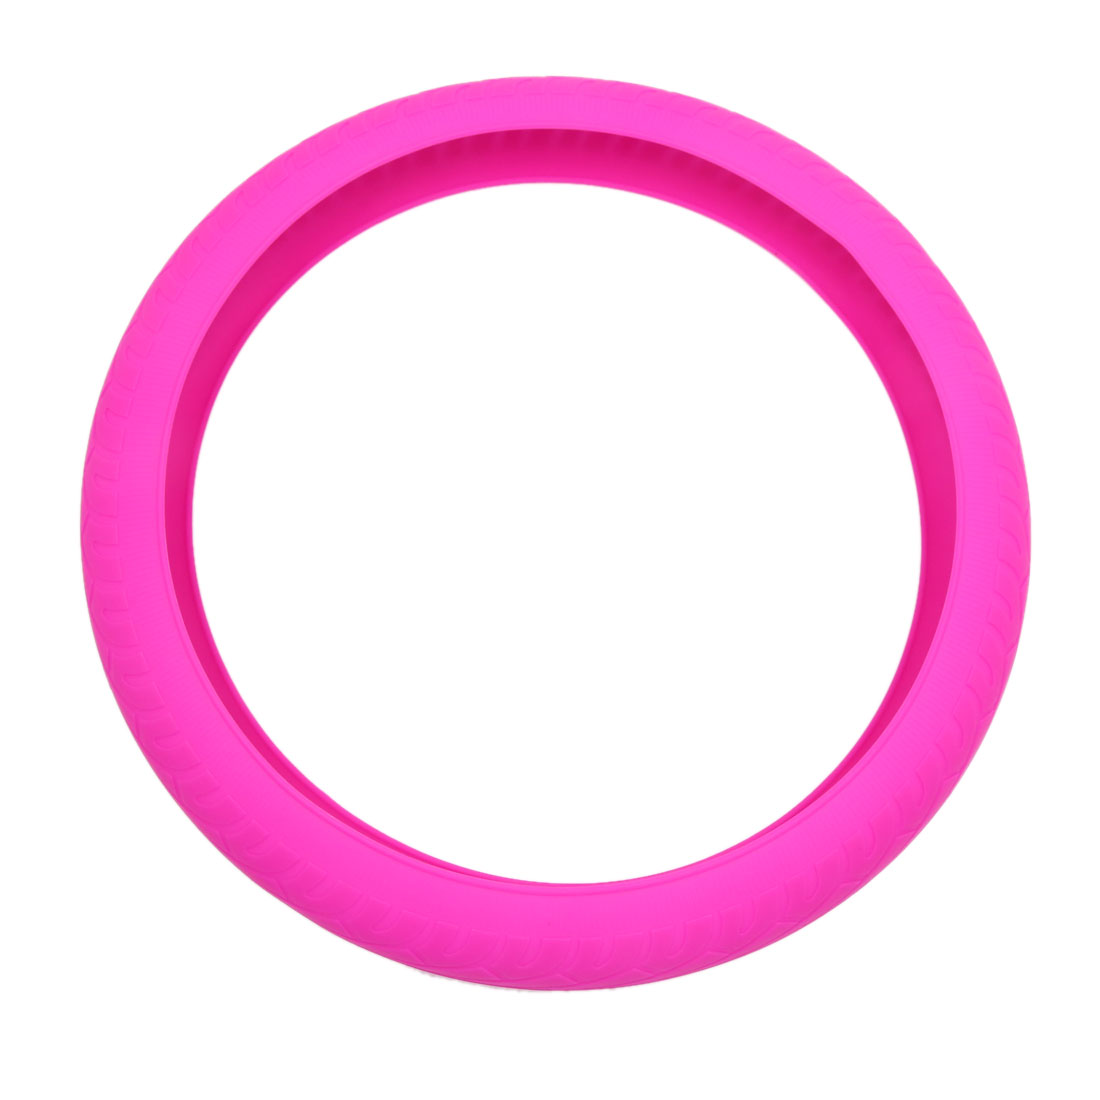 34cm Outer Dia Fuchsia Silicone Anti-Slip Steering Wheel Cover Protector for Car